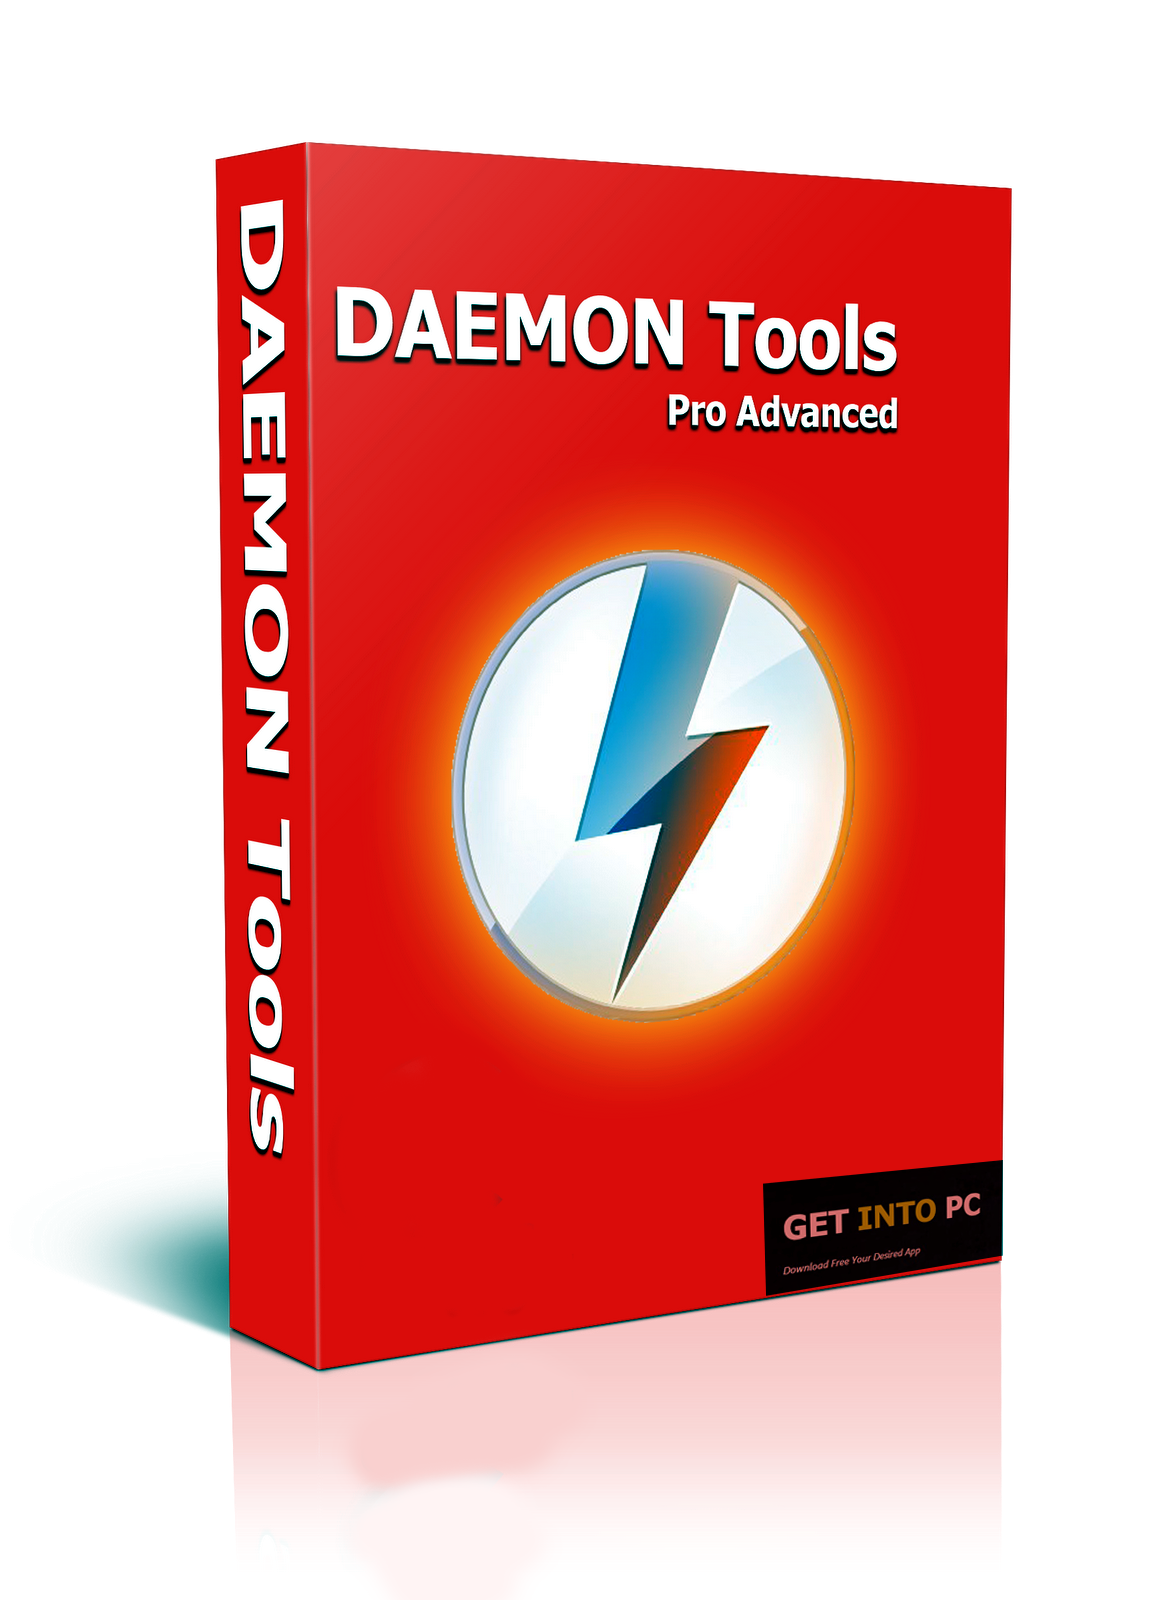 DAEMON Tools Pro Advanced Free Download